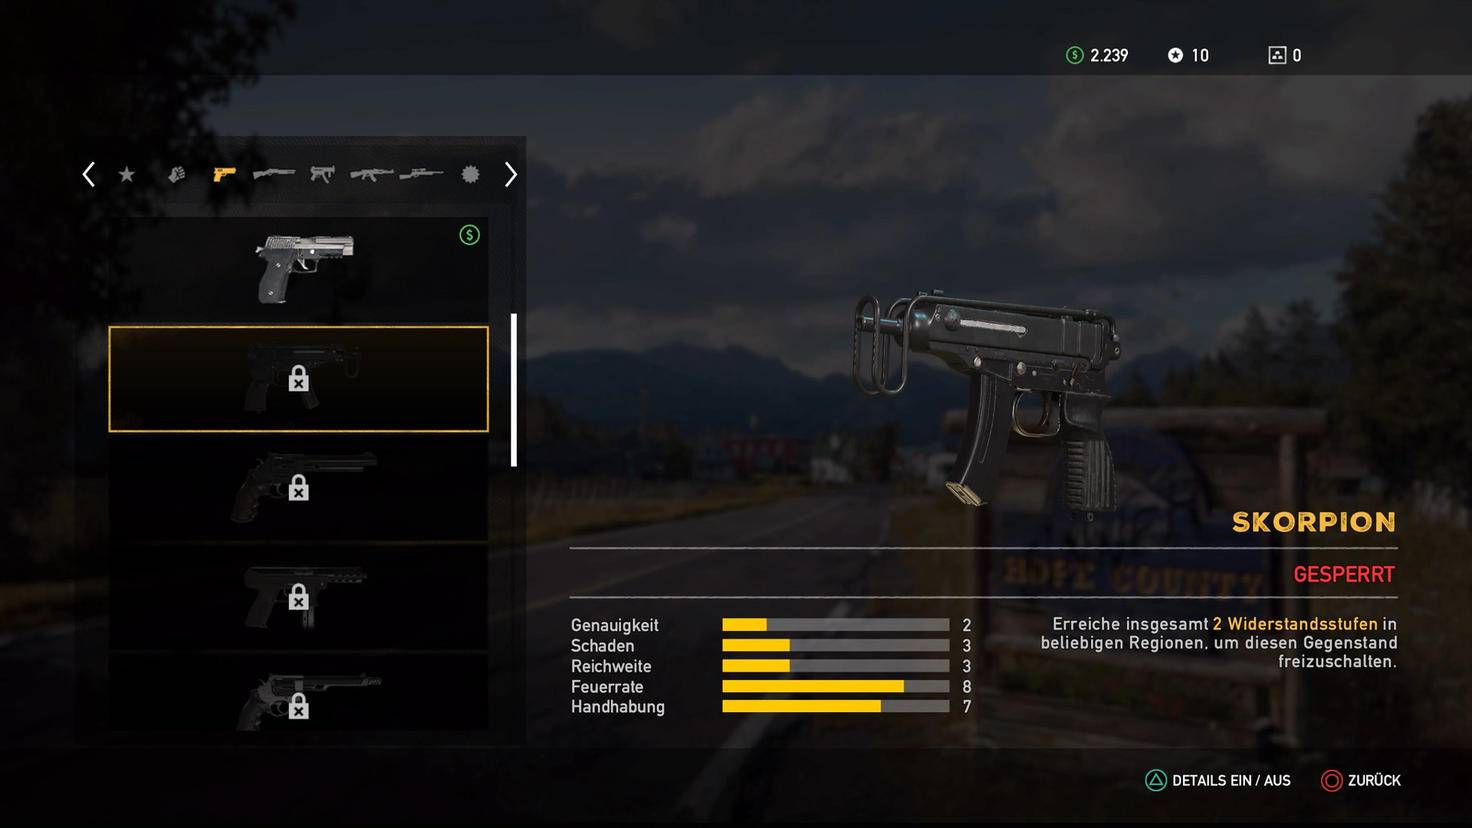 Far-Cry-5-Waffen-Skorpion